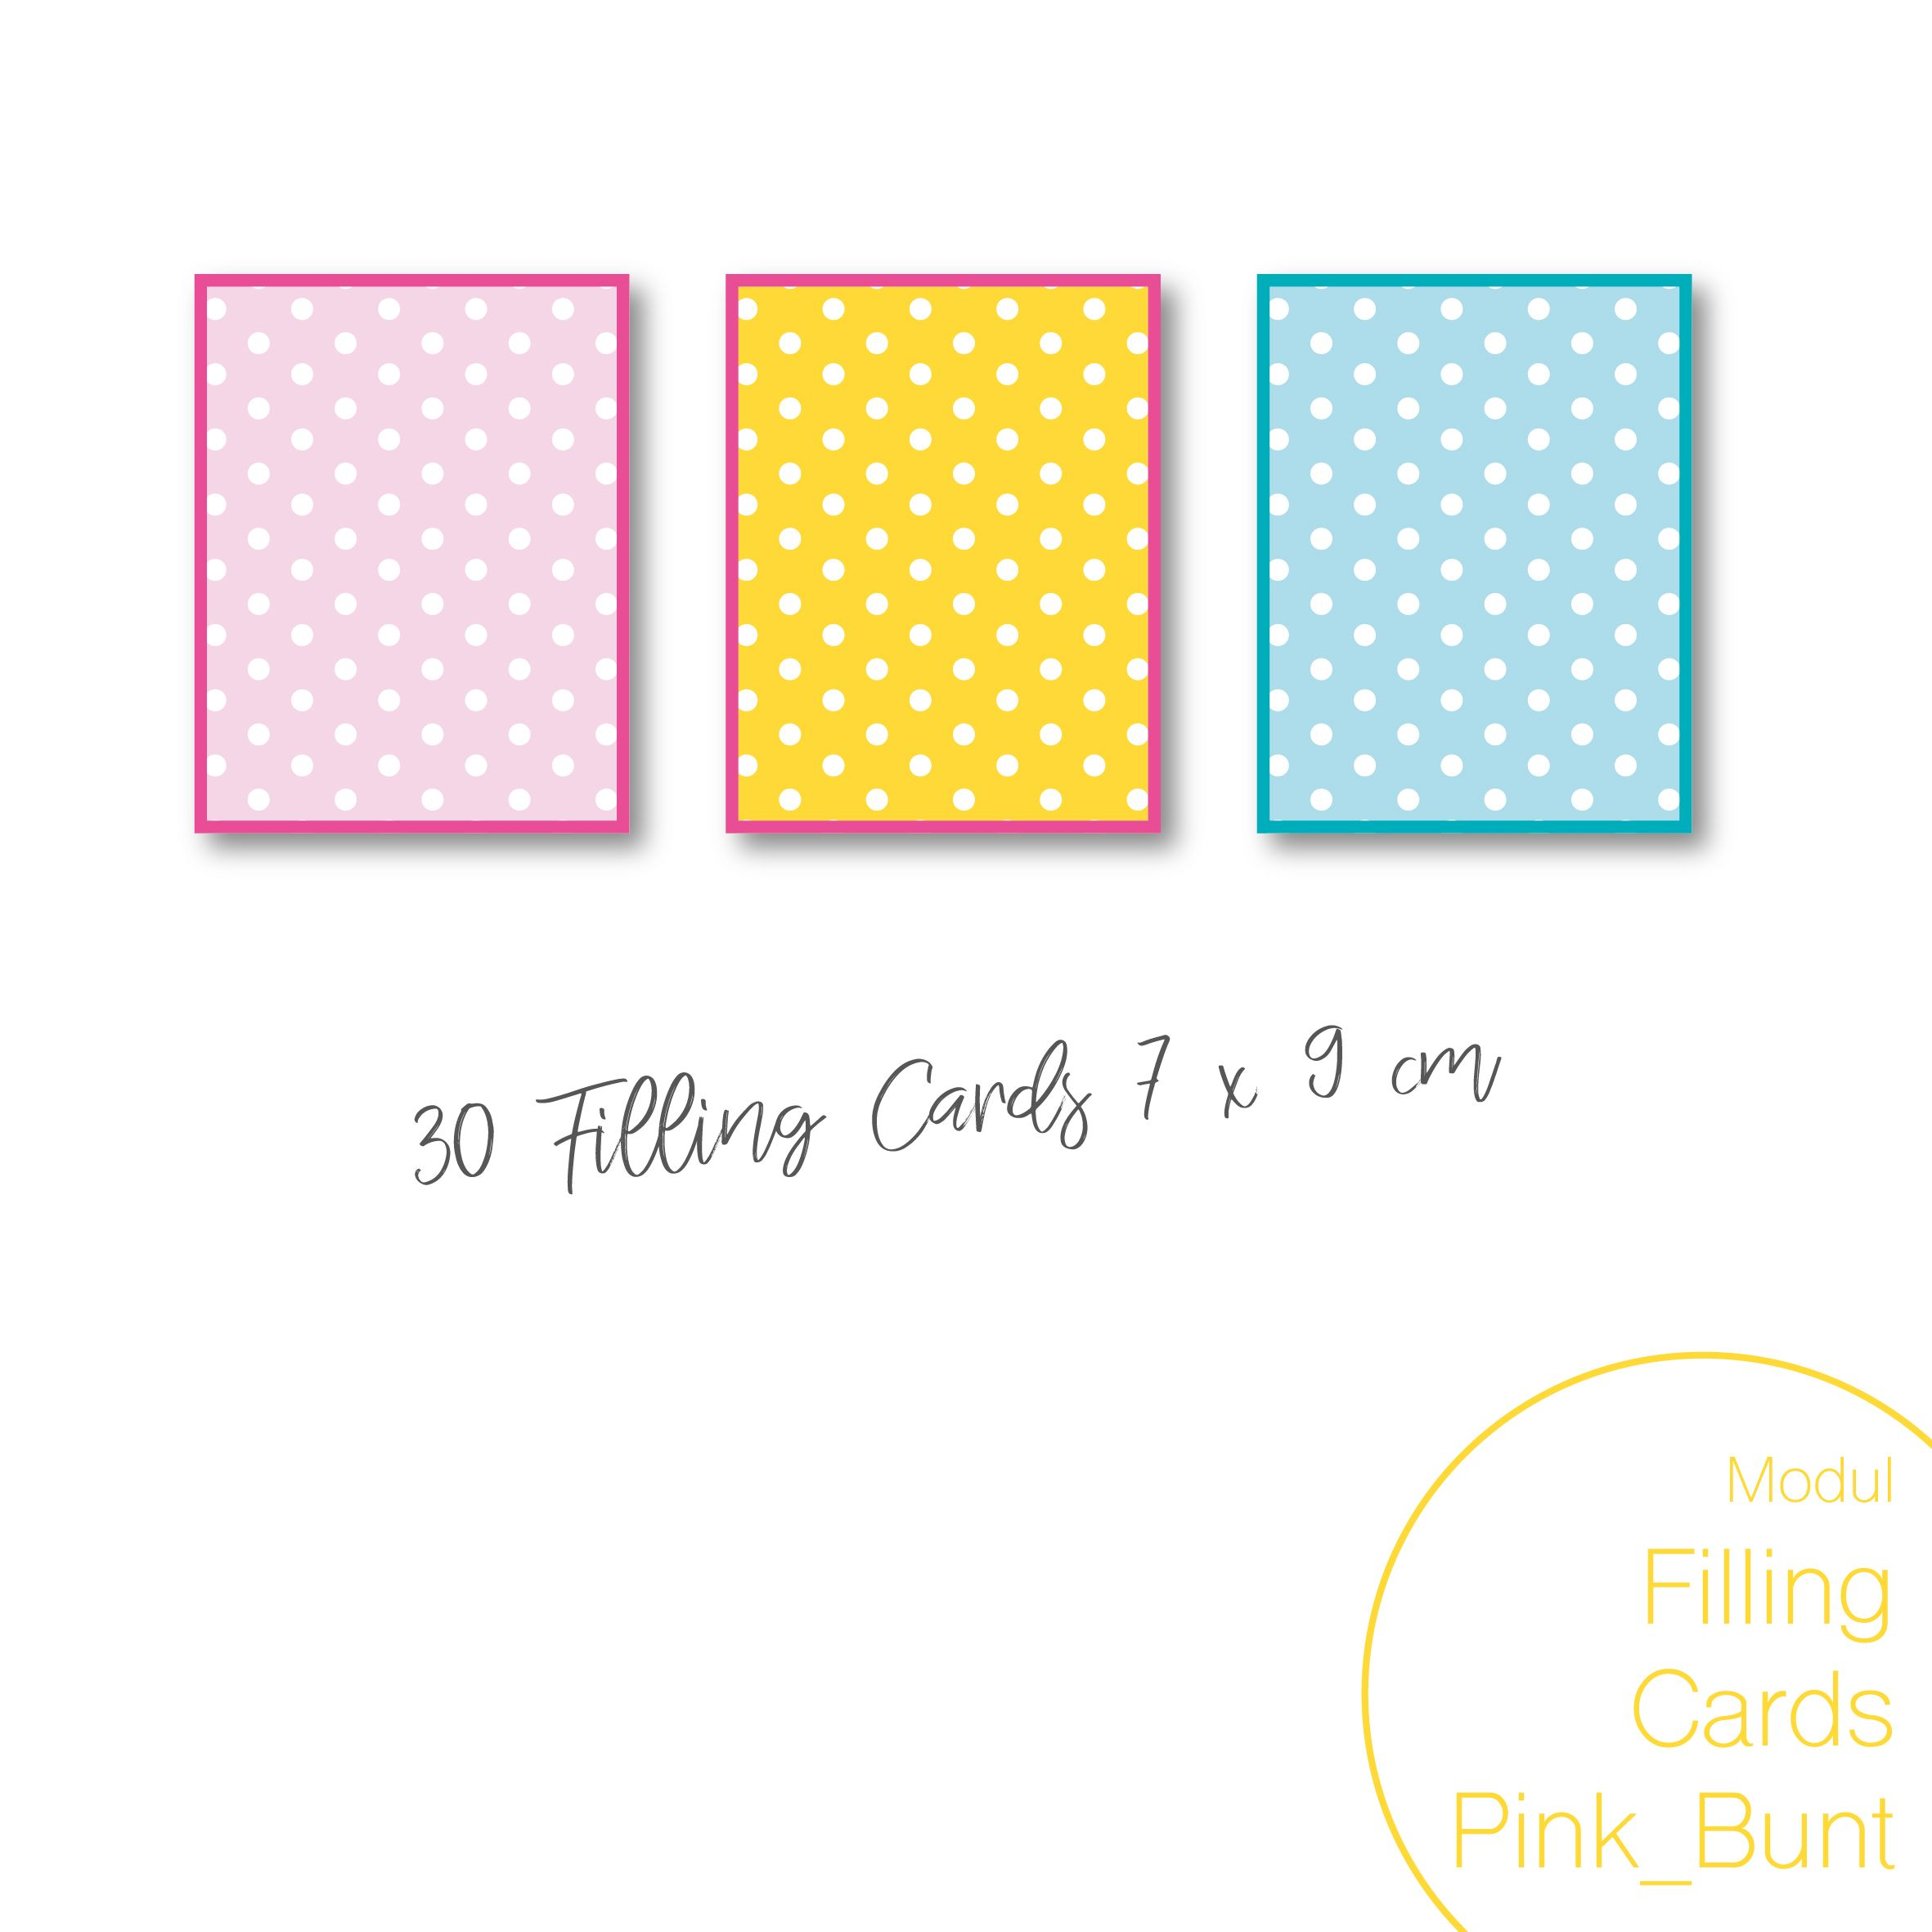 Dein Remember-Me Modul Filling-Cards Klein Pink_Bunt